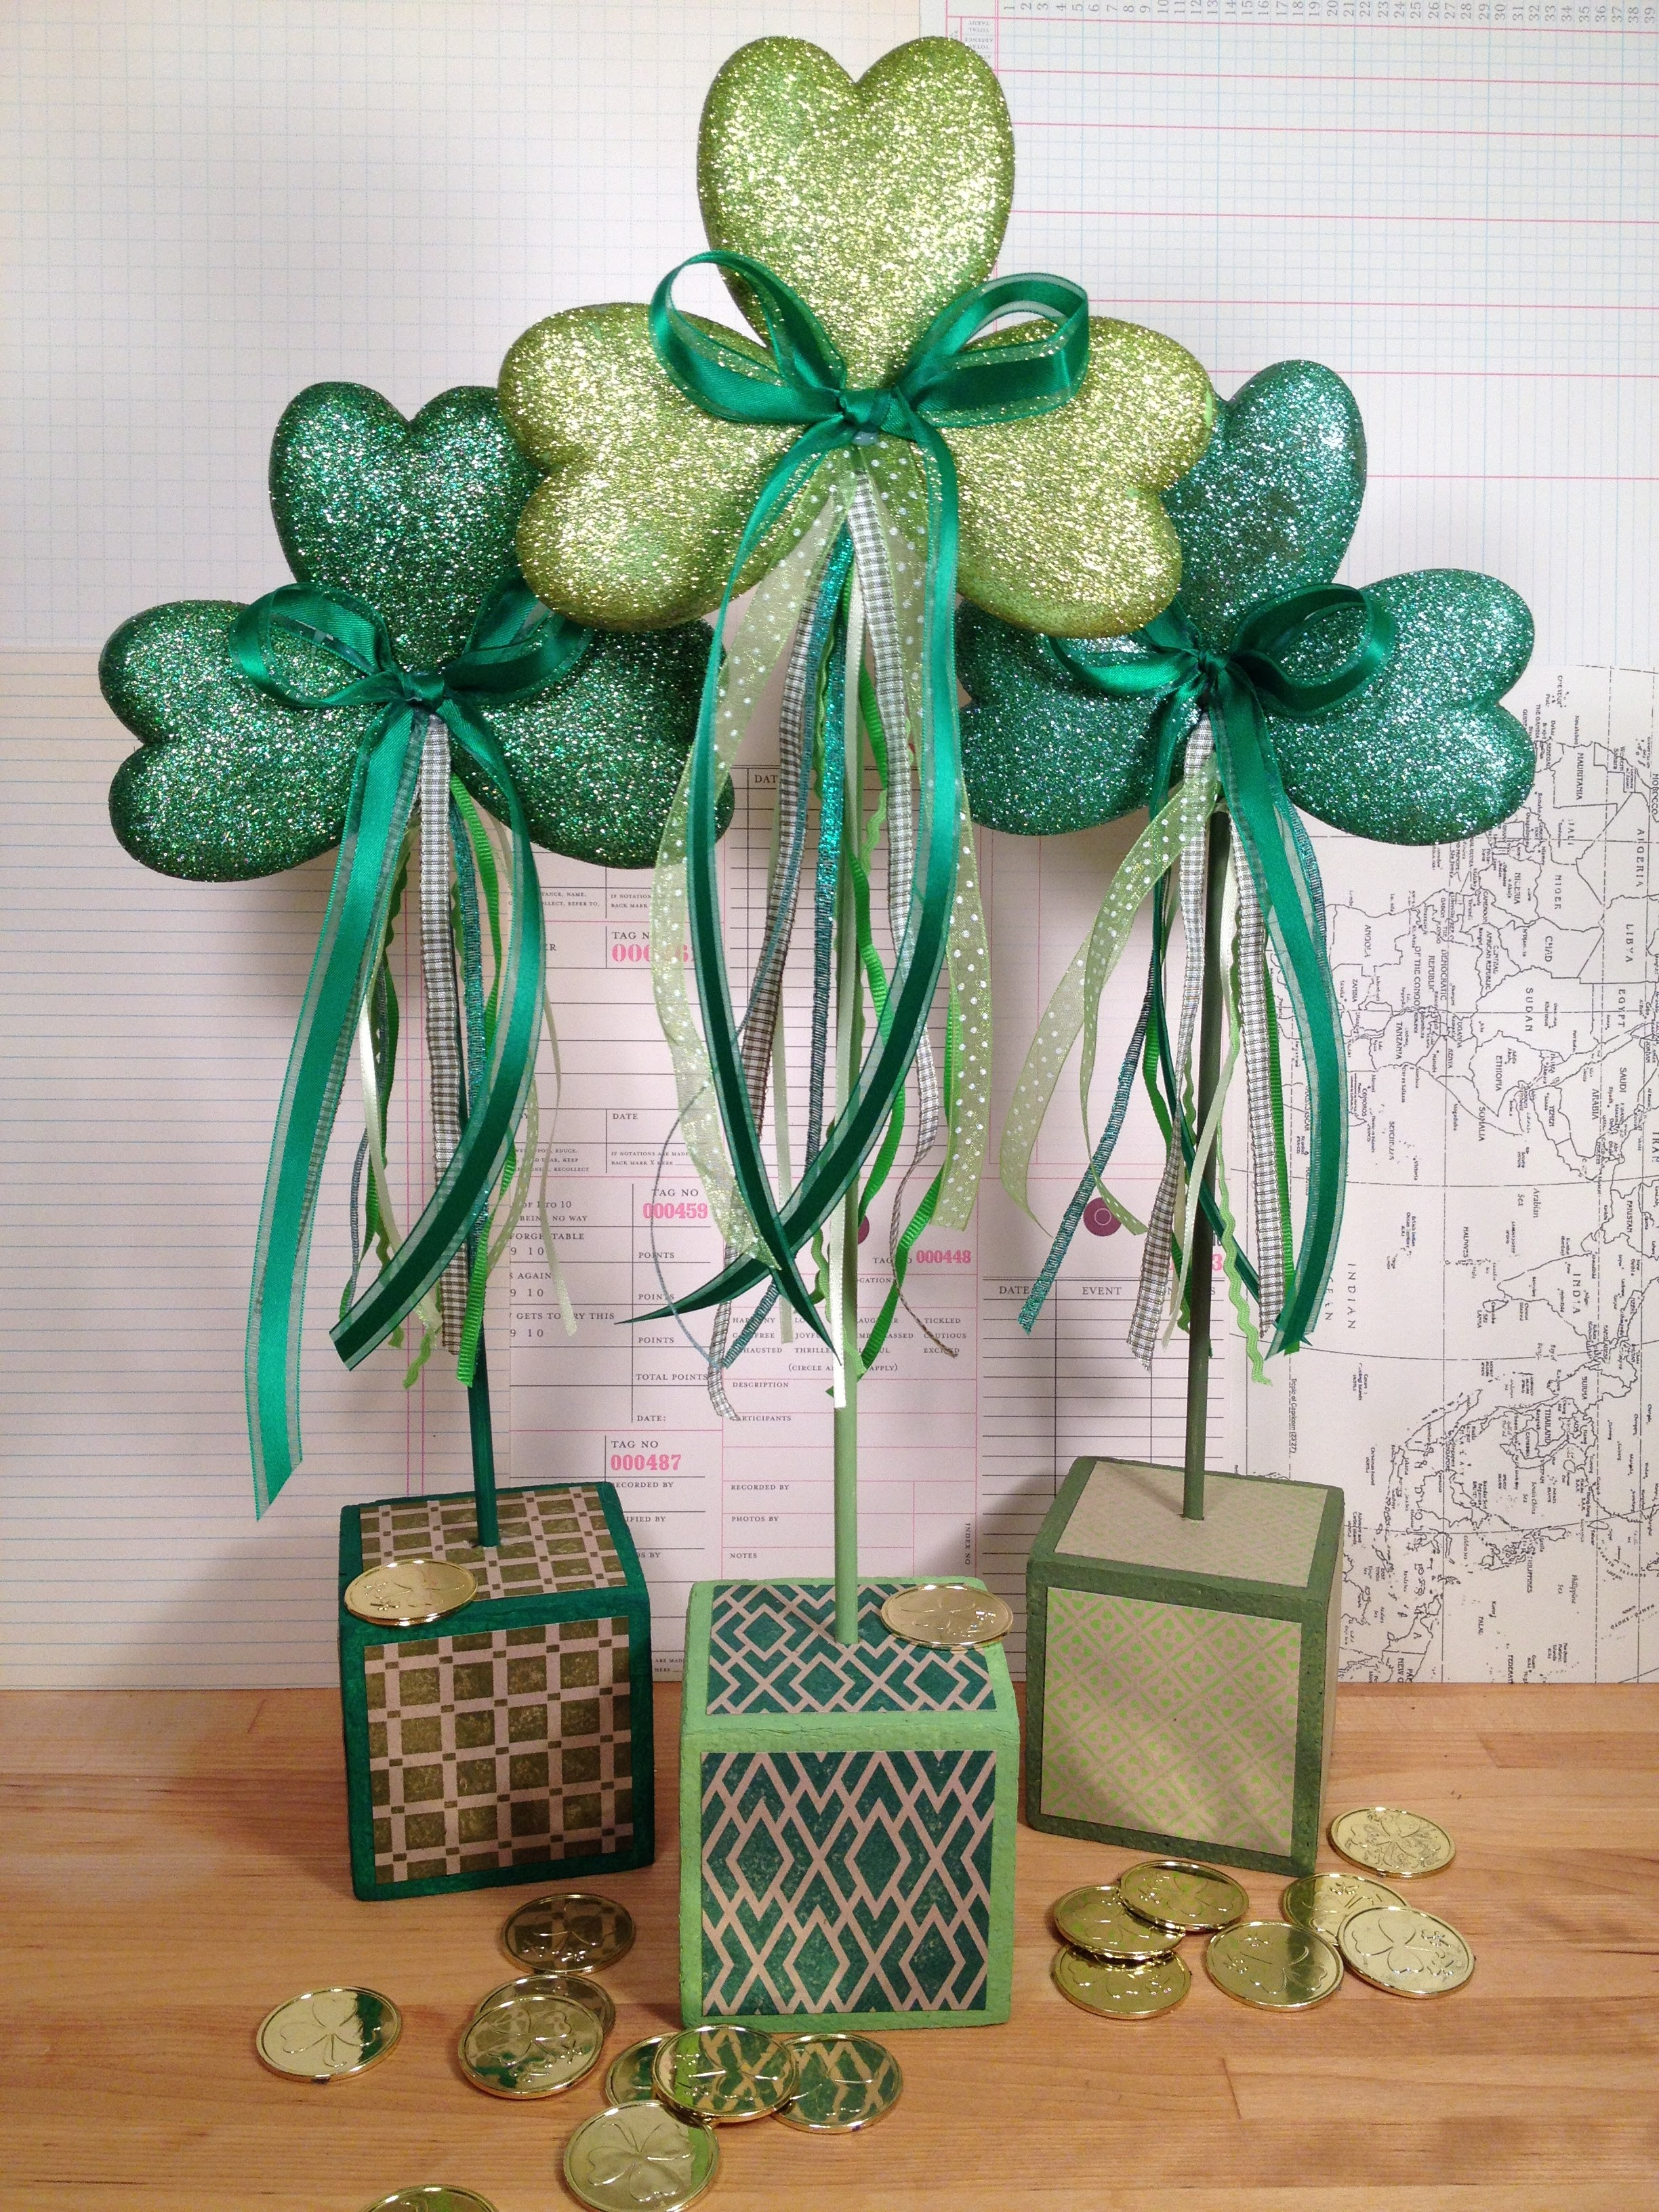 http://www.smoothfoam.com/blog/wp-content/uploads/2015/03/03-15-SF-SHAMROCK-TOPIARY-MAIN-e1425308950565.jpg